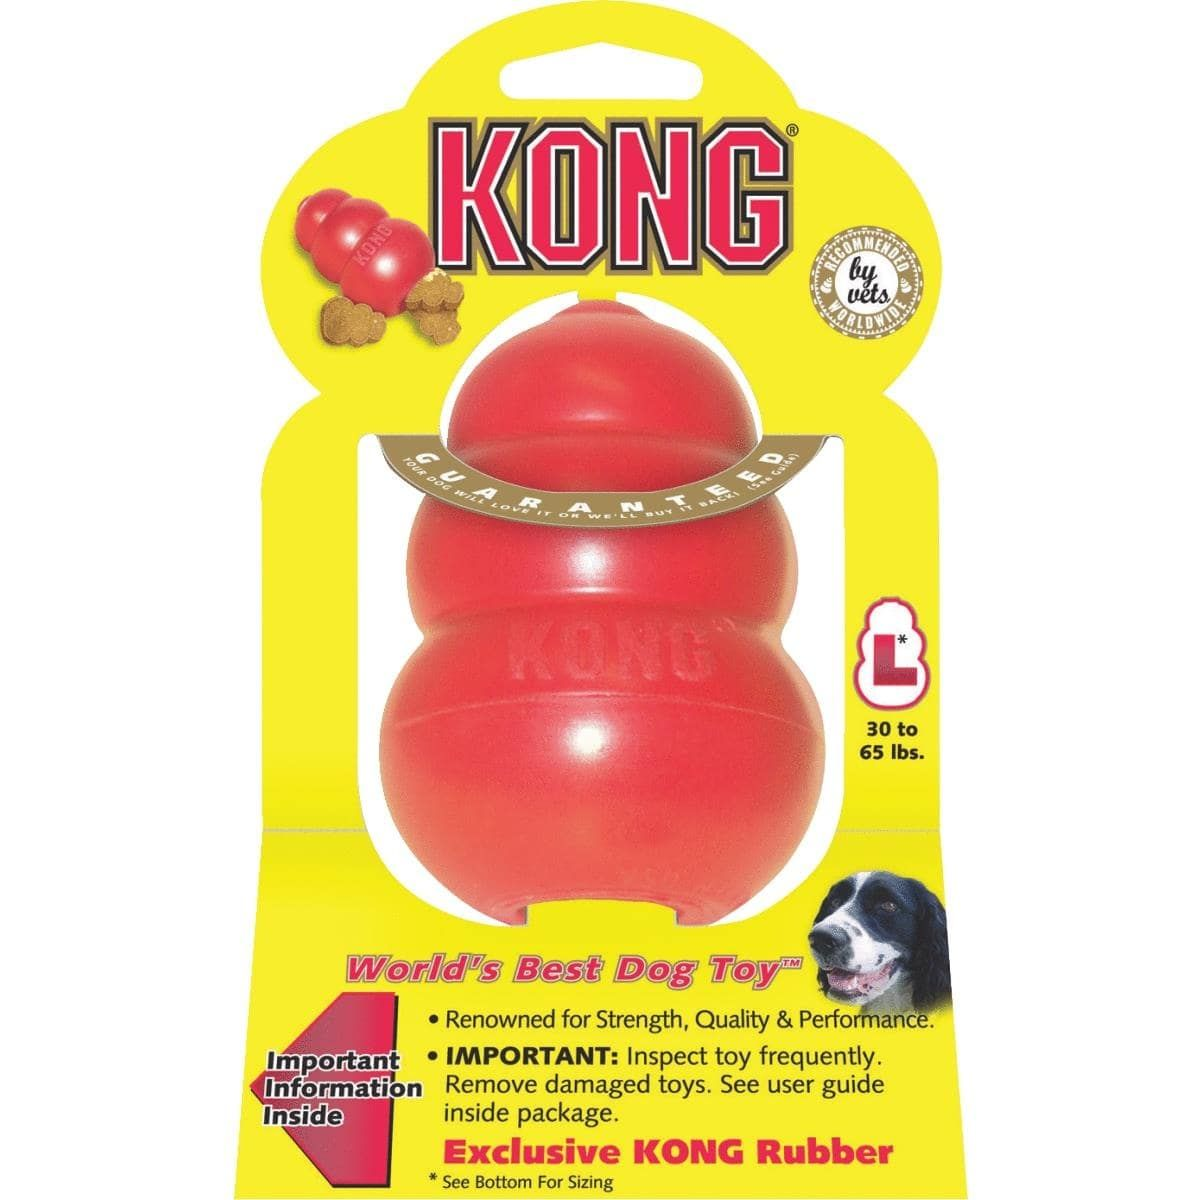 Dog toys images  Kong Large Red Kong Dog Toy  Toy and Products